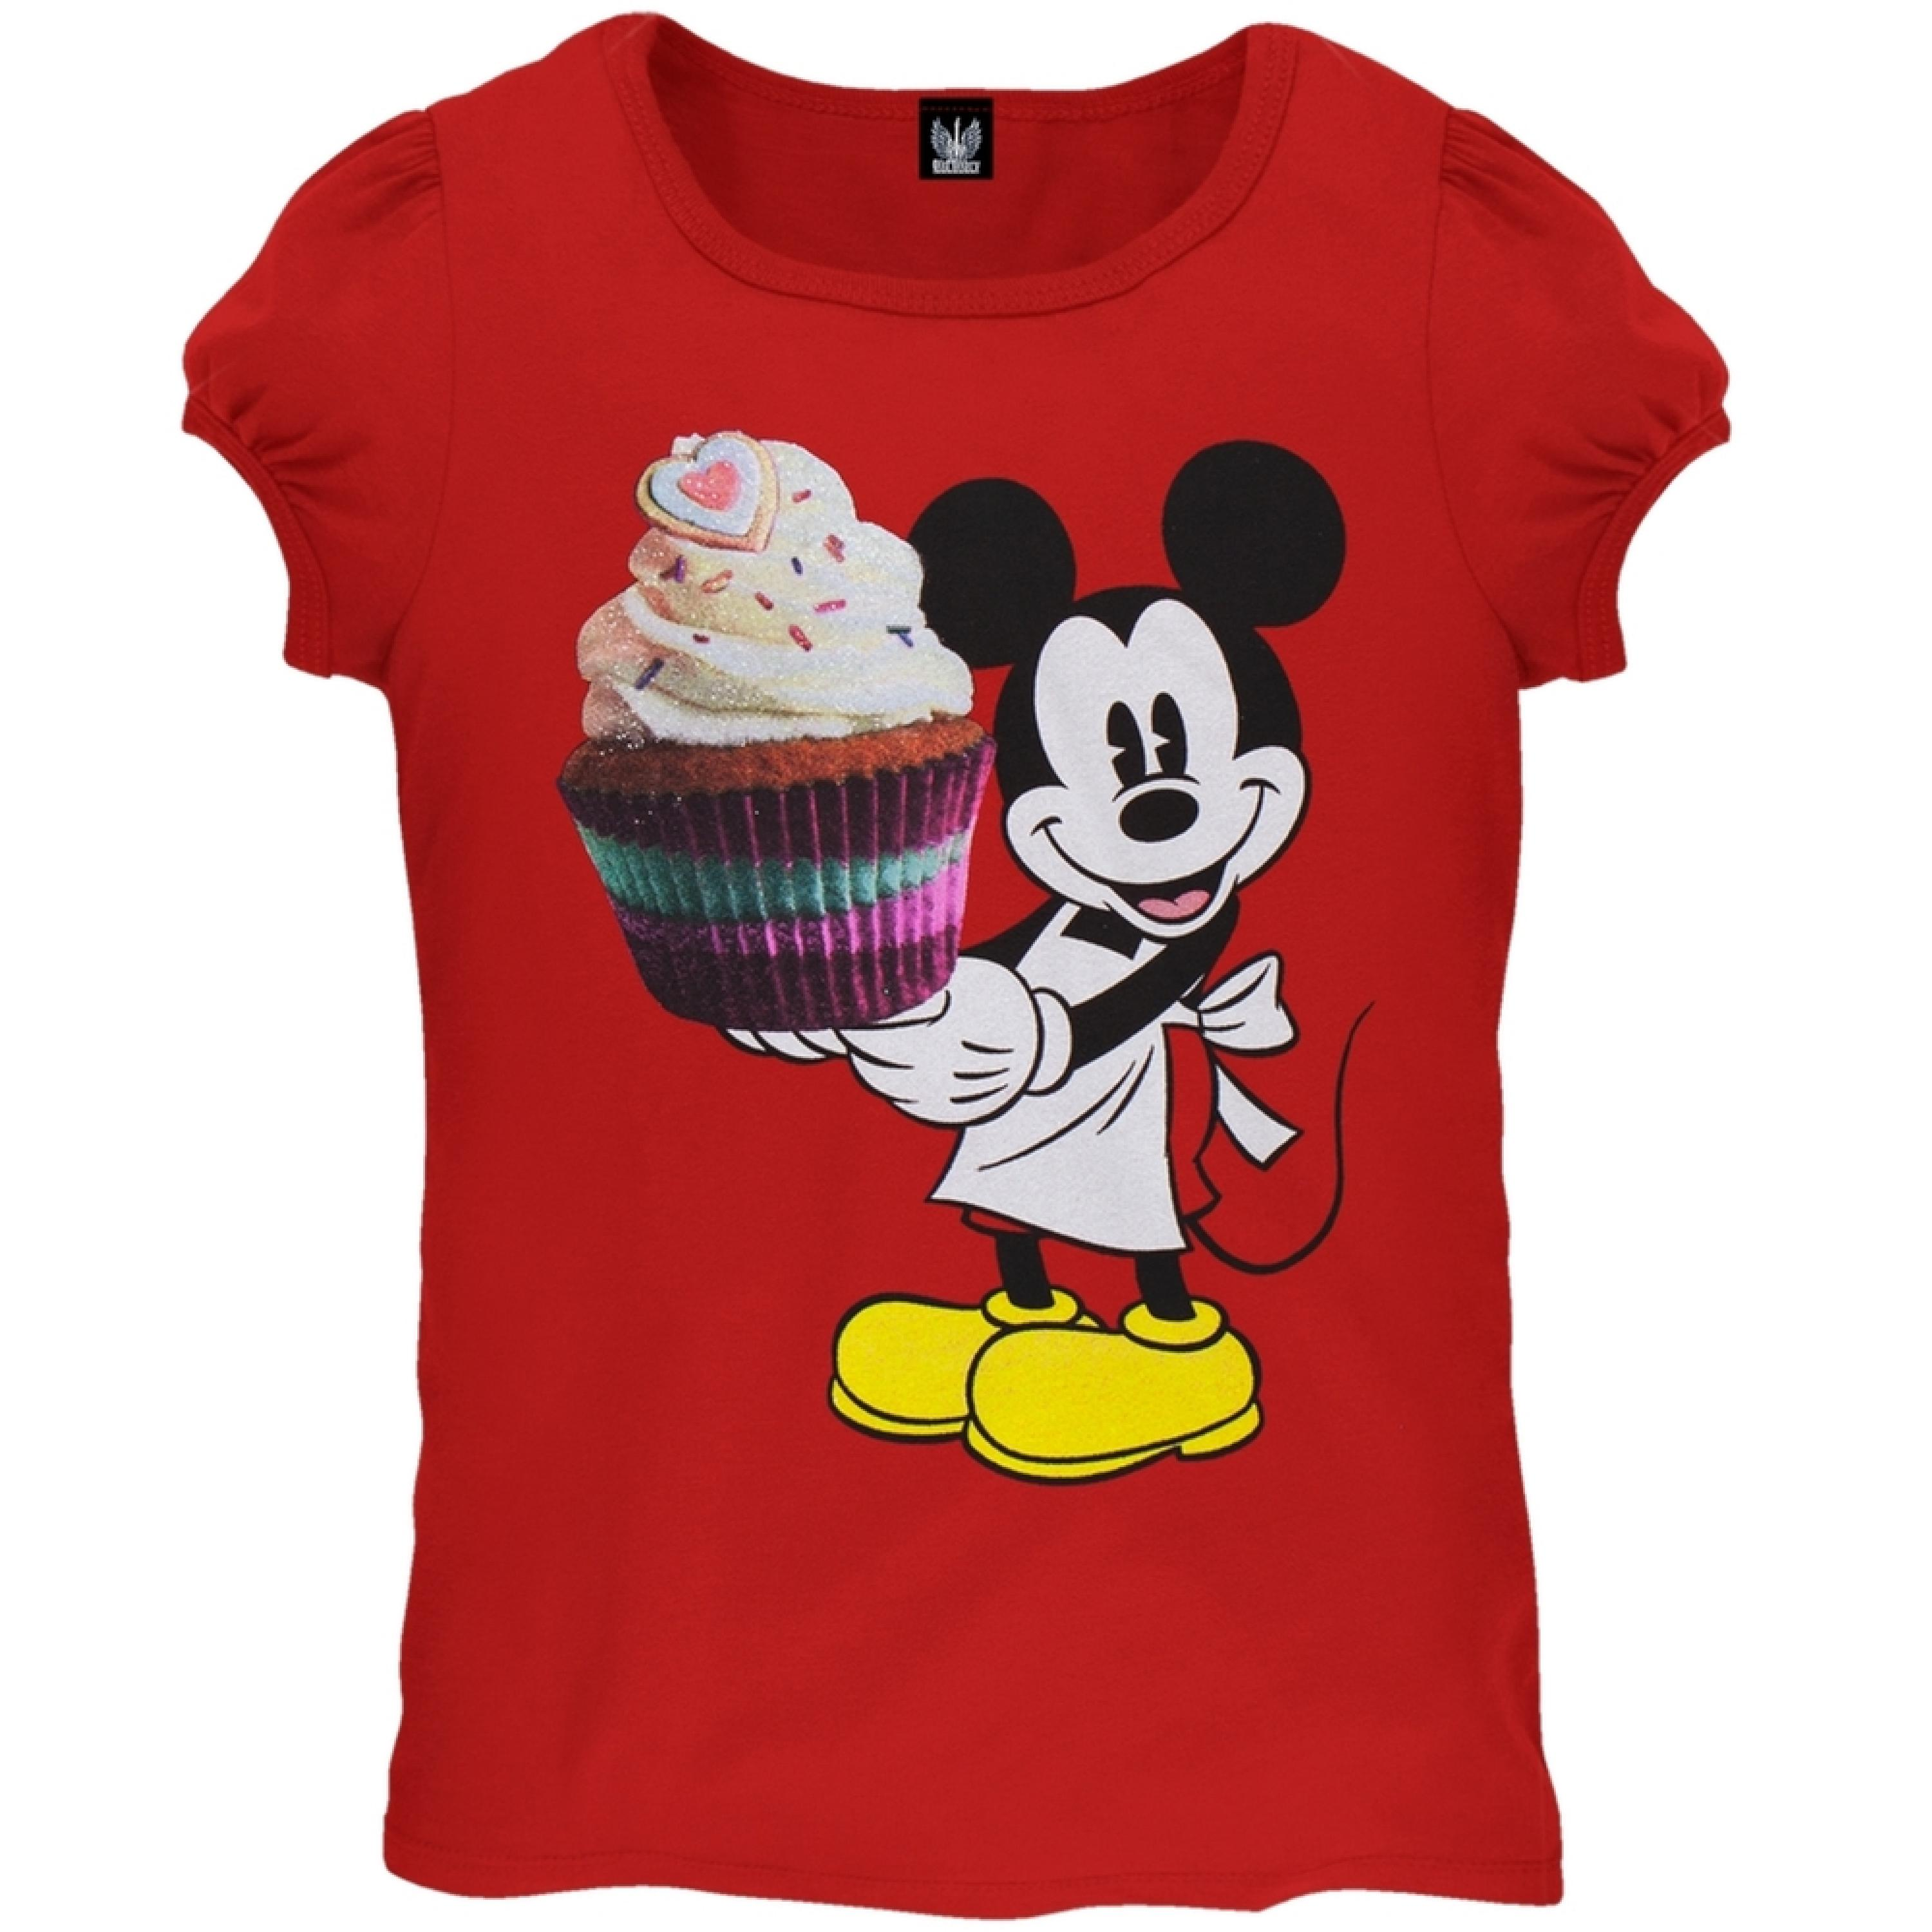 Mickey Mouse - Cupcake Baker Girls Juvy T-Shirt